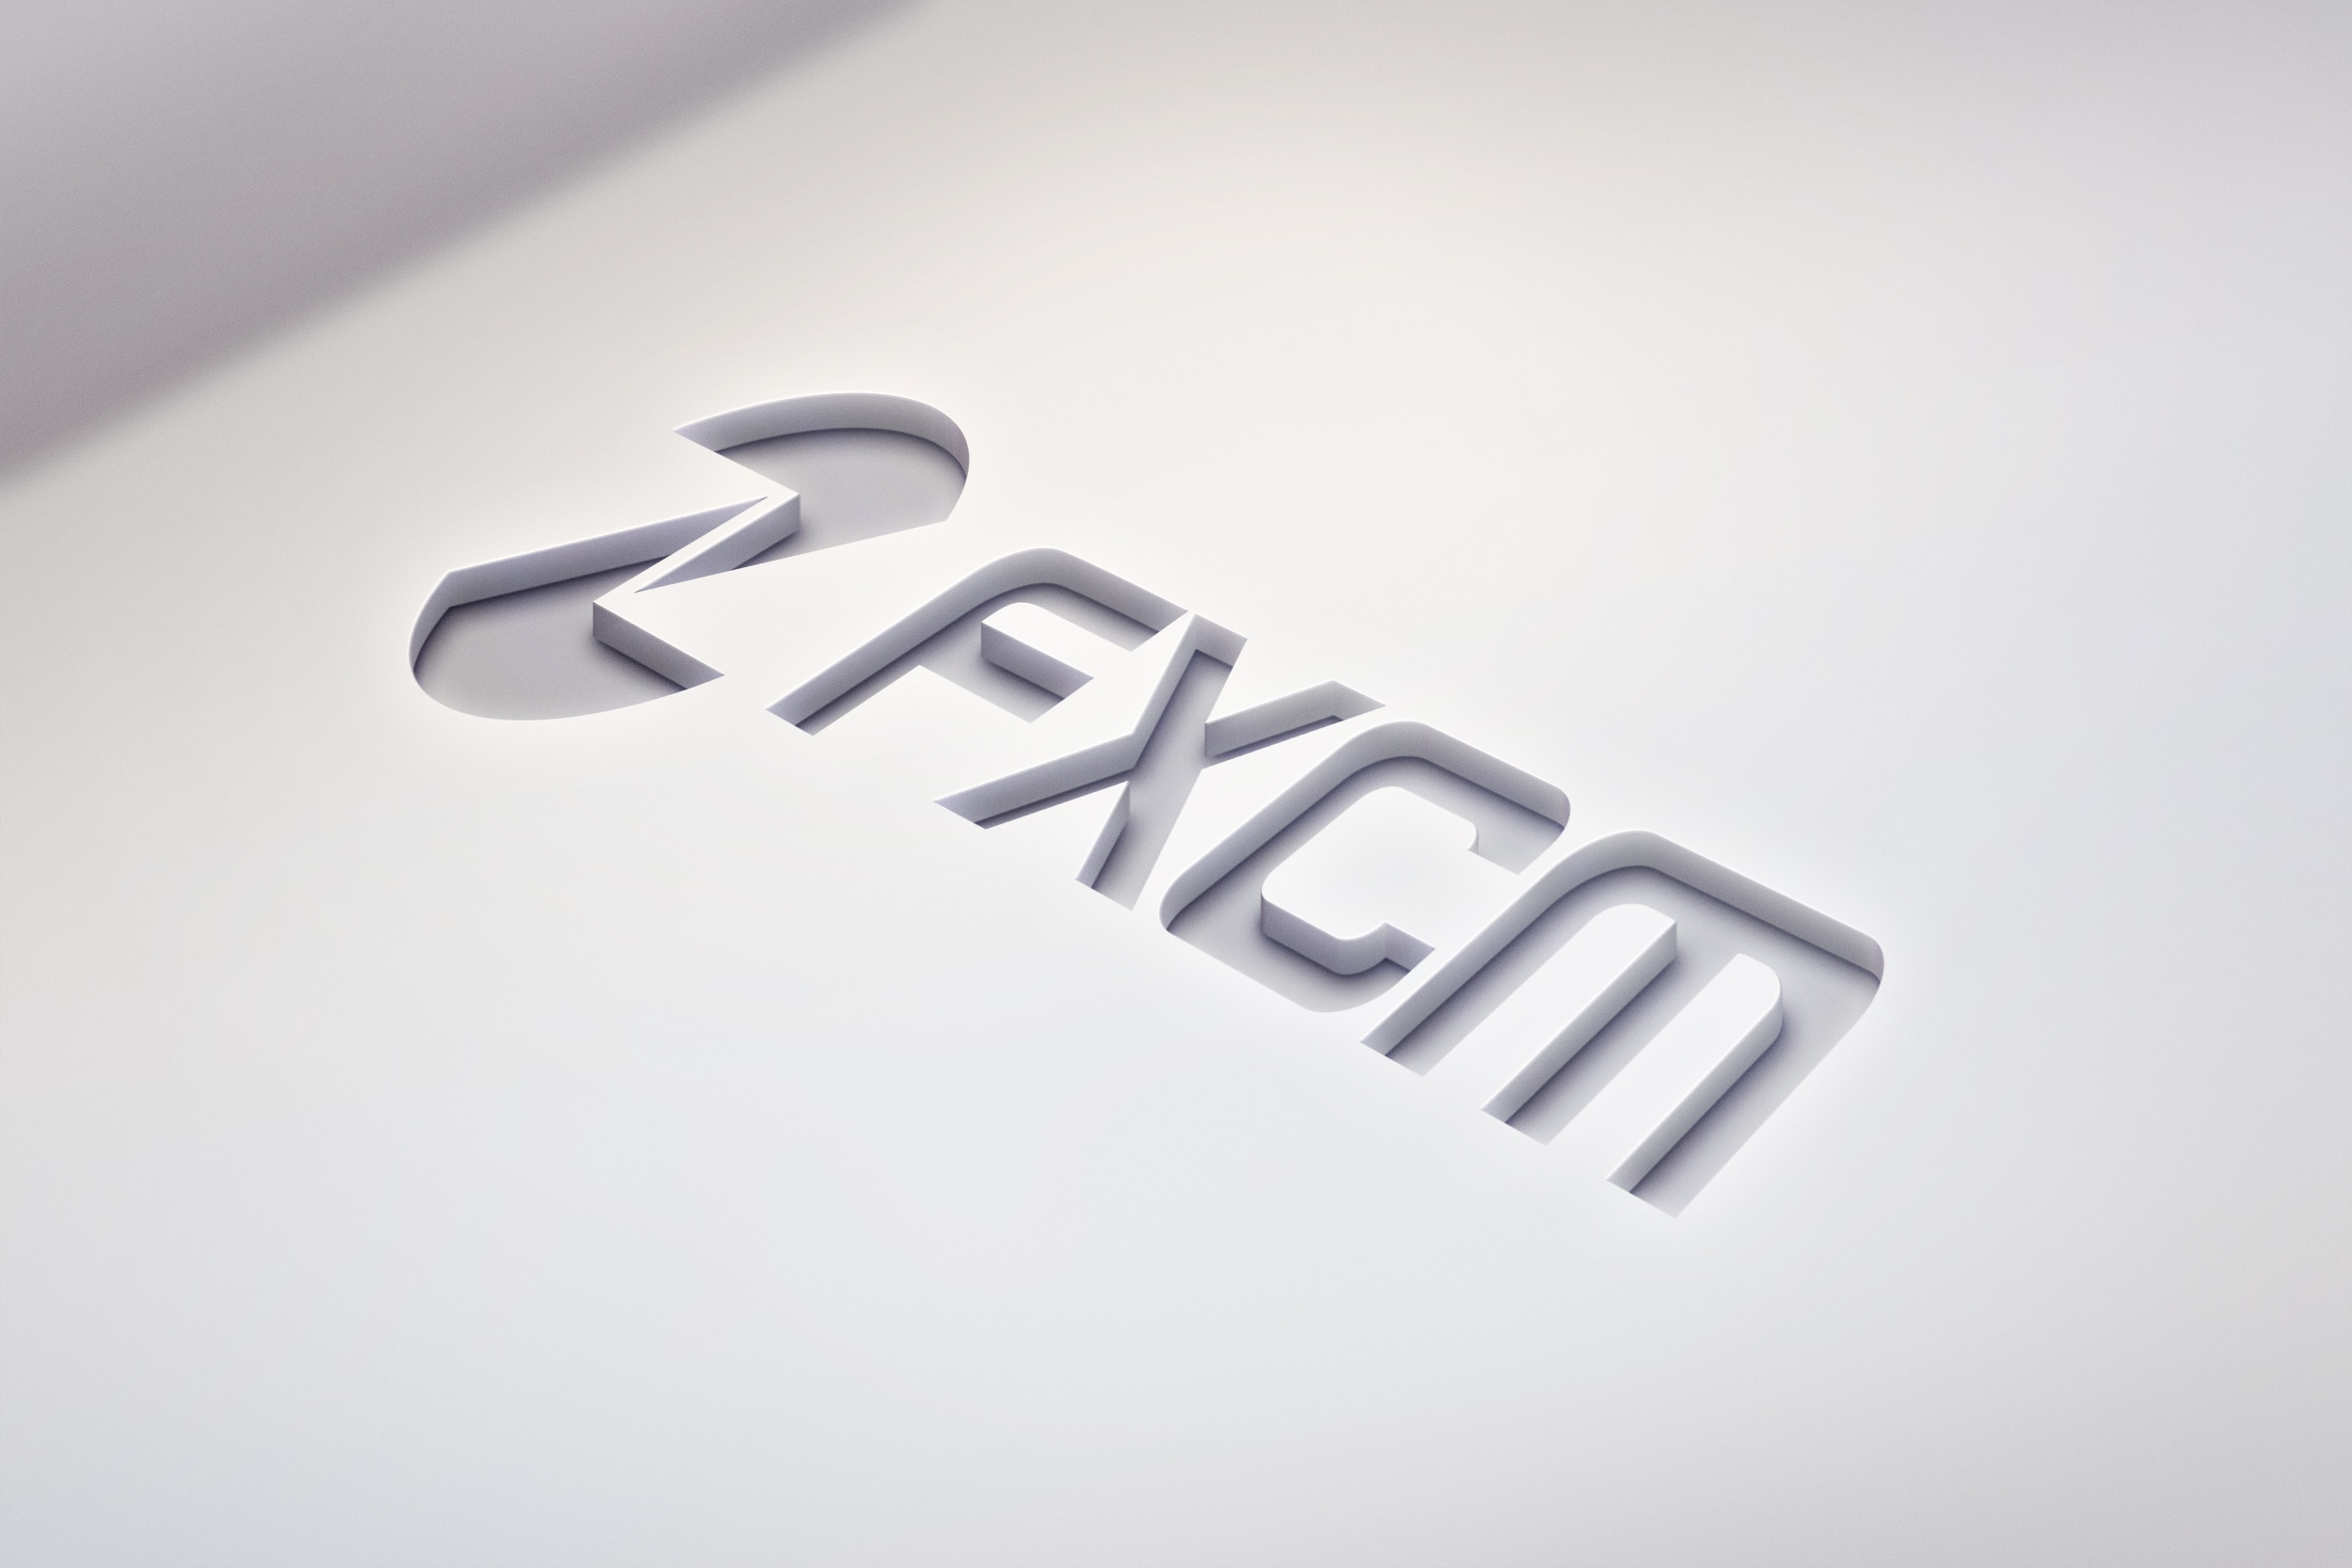 FXCM Hires Anthony Mazzarese as Senior Vice President, Institutional Sales